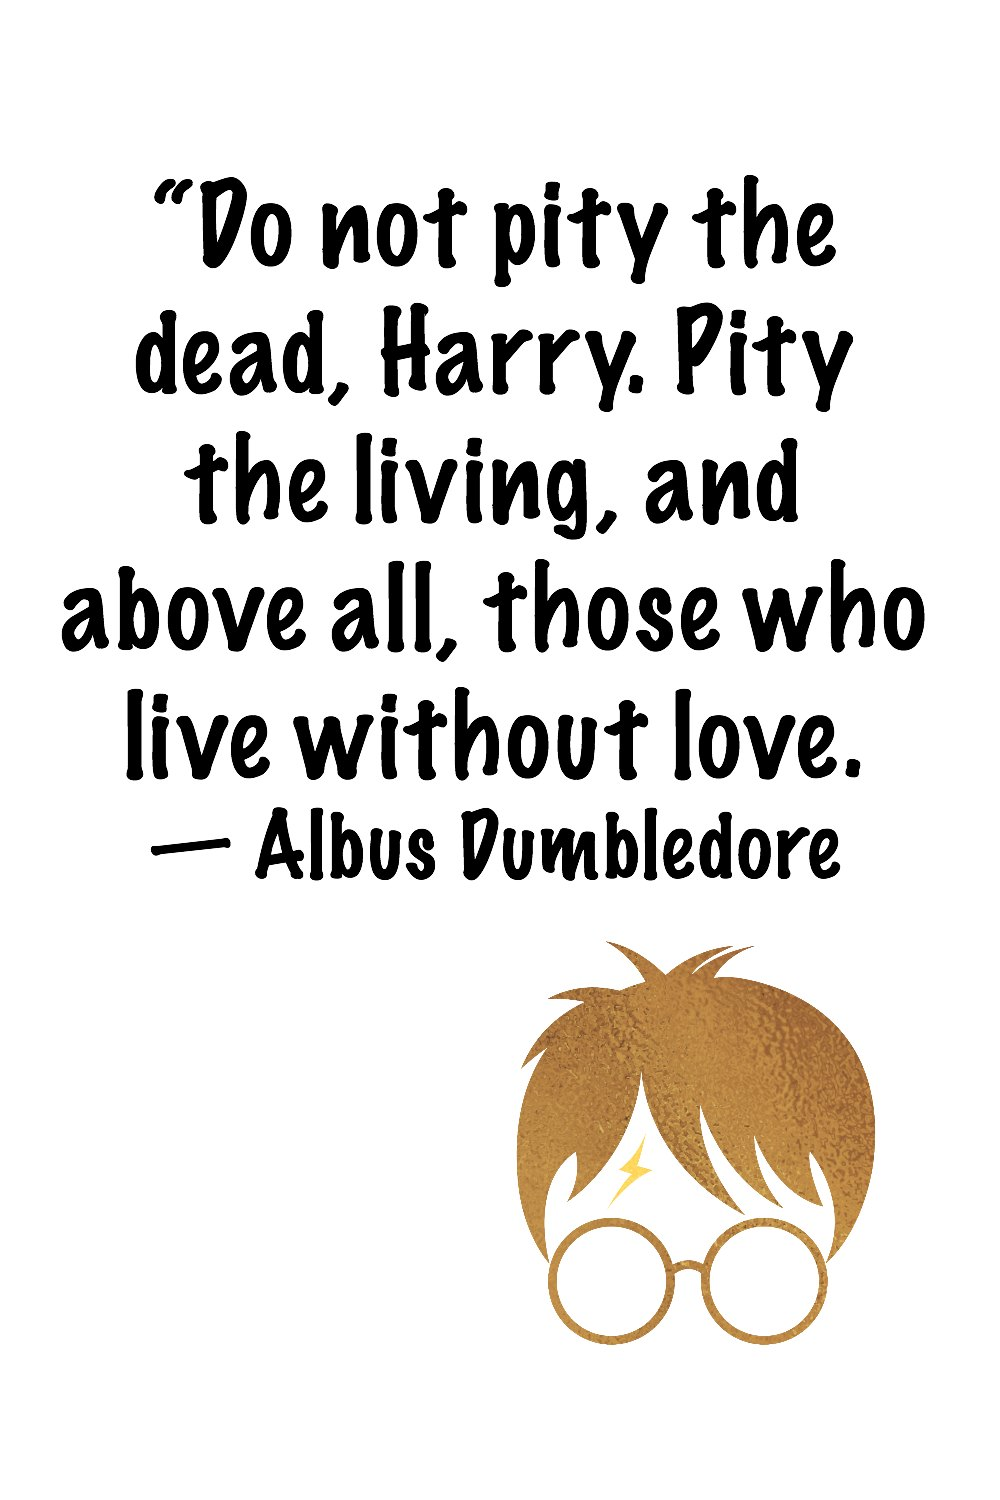 Harry Potter book quotes #harrypotter